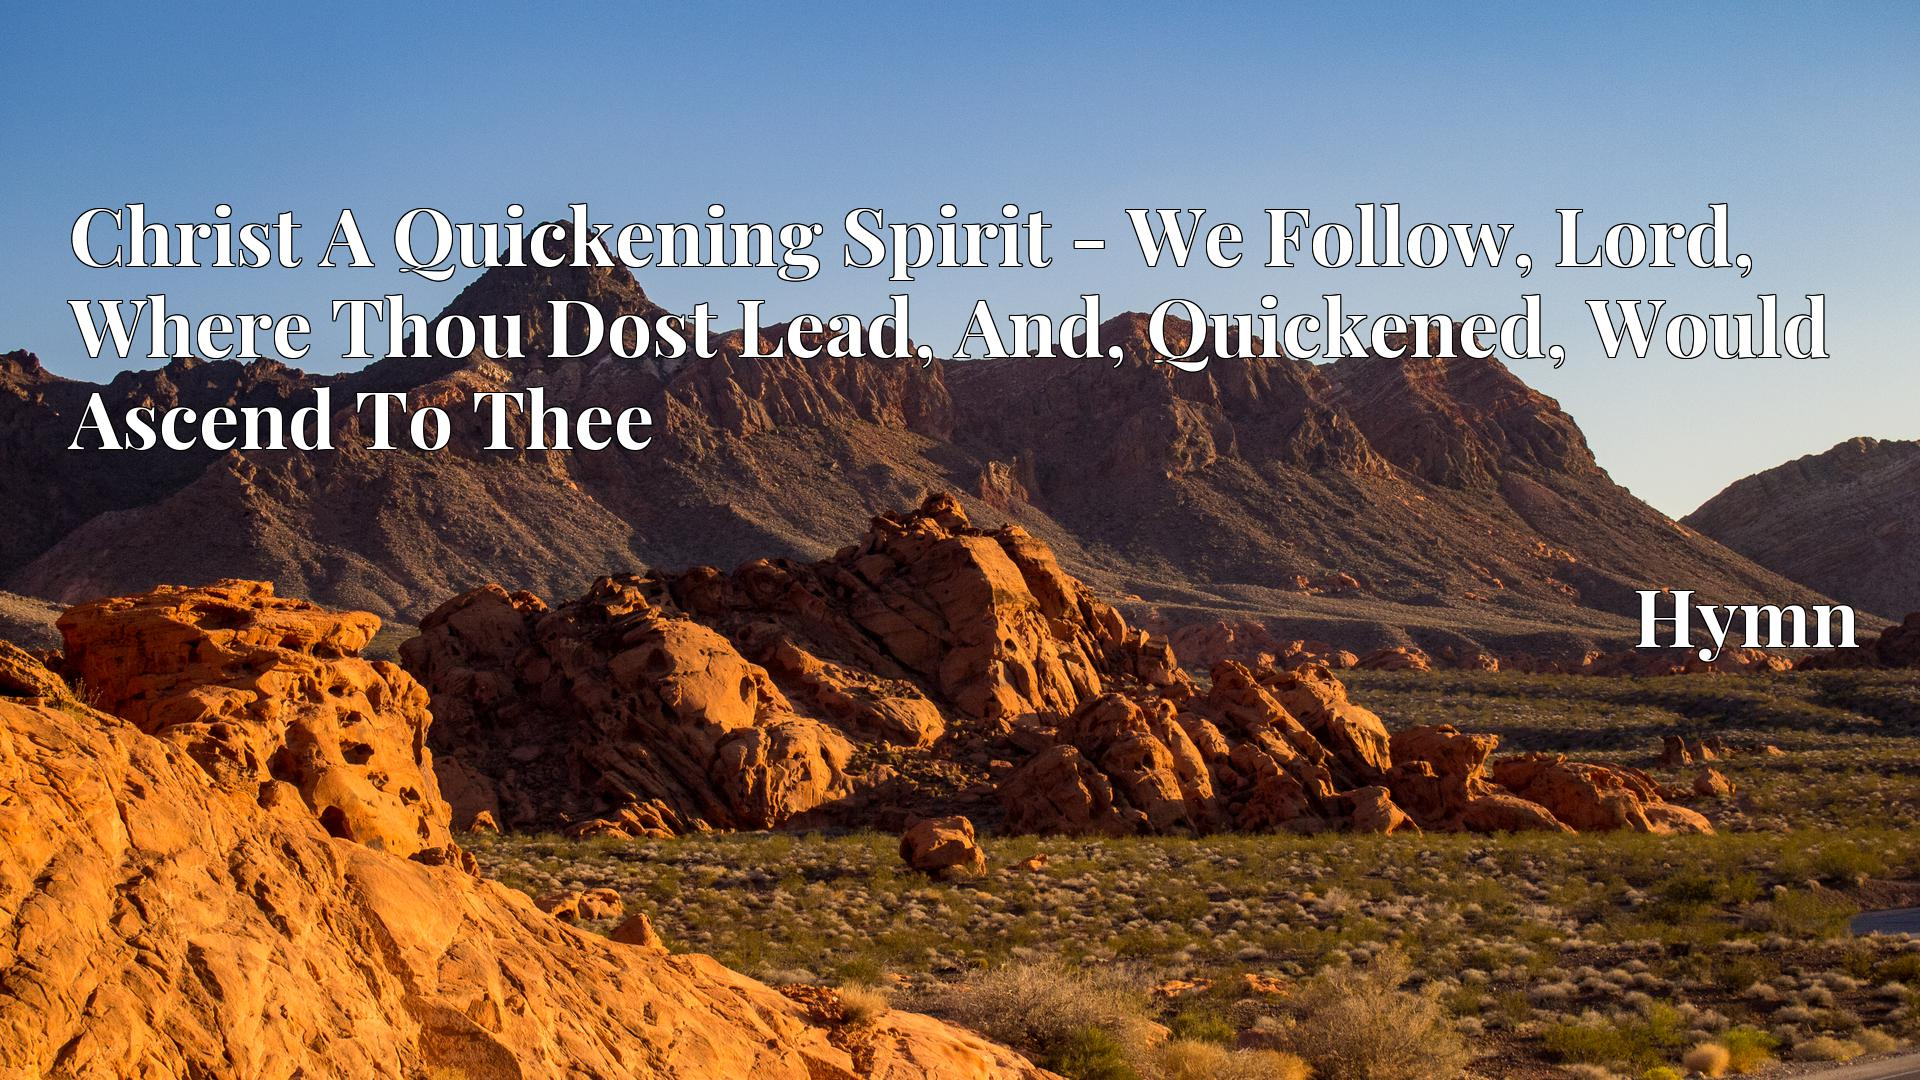 Christ A Quickening Spirit - We Follow, Lord, Where Thou Dost Lead, And, Quickened, Would Ascend To Thee - Hymn